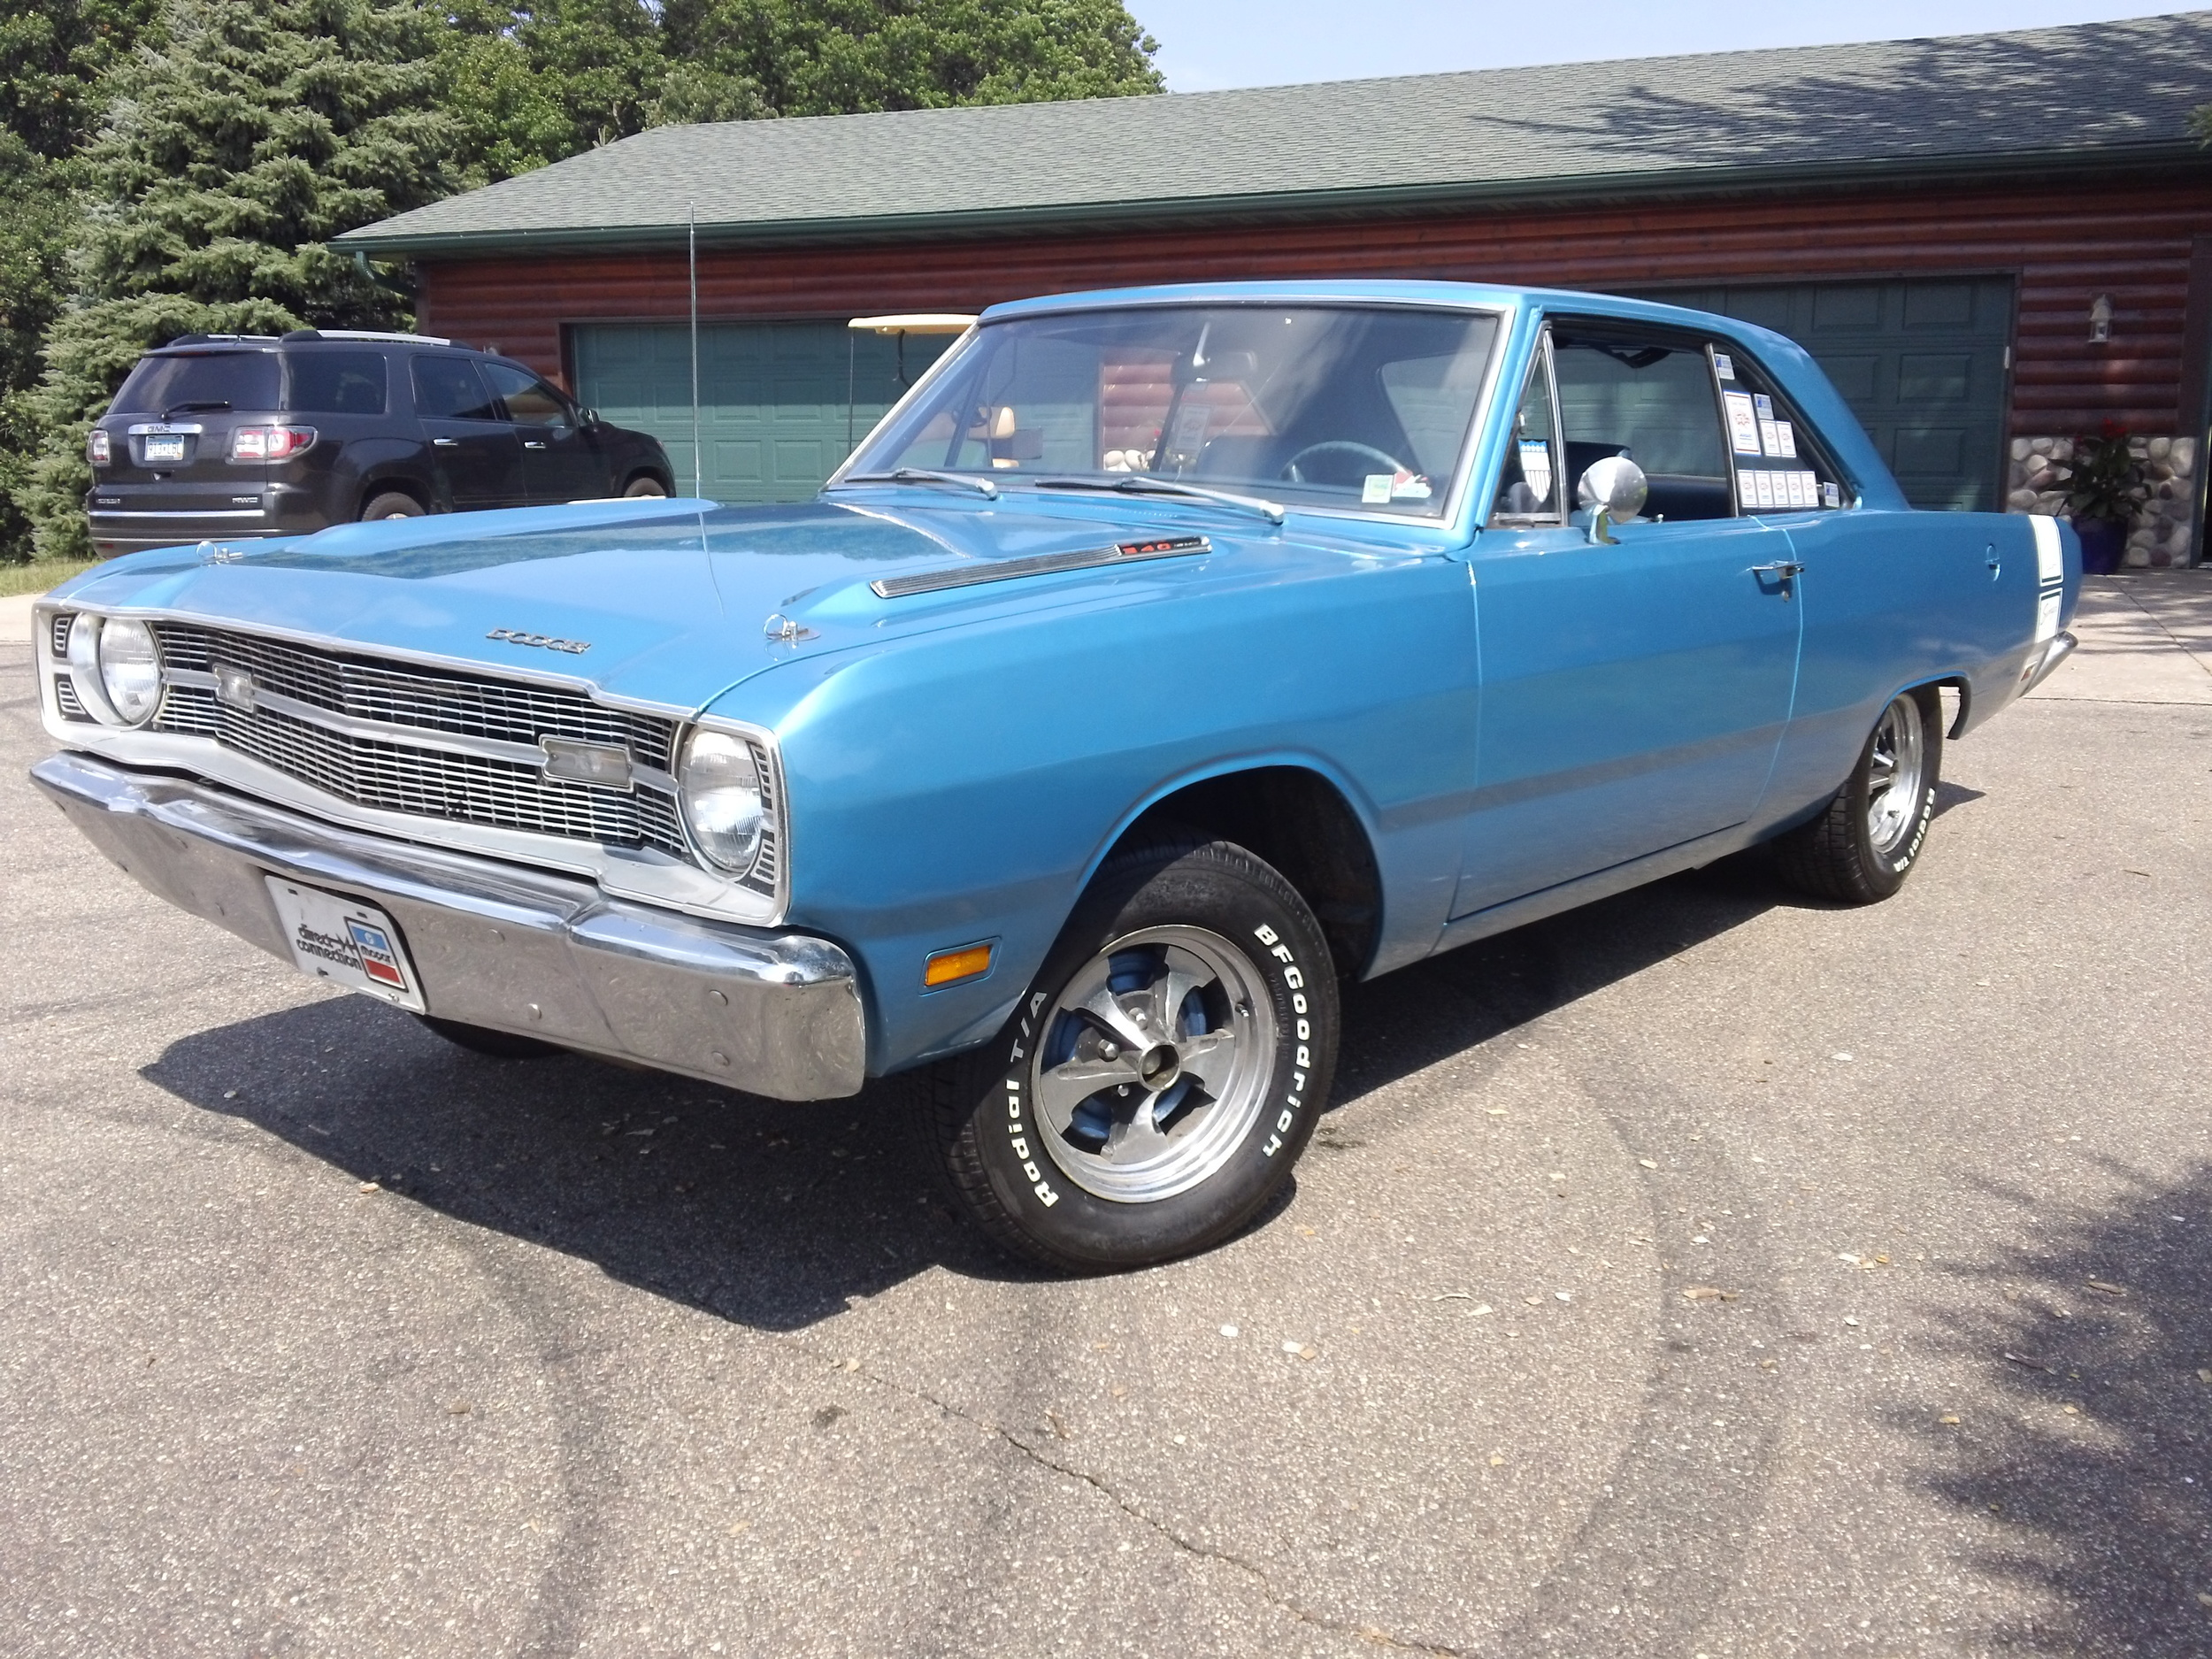 dodge-dart-minneapolis-hot-rod-custom-car-restoration-1.jpg